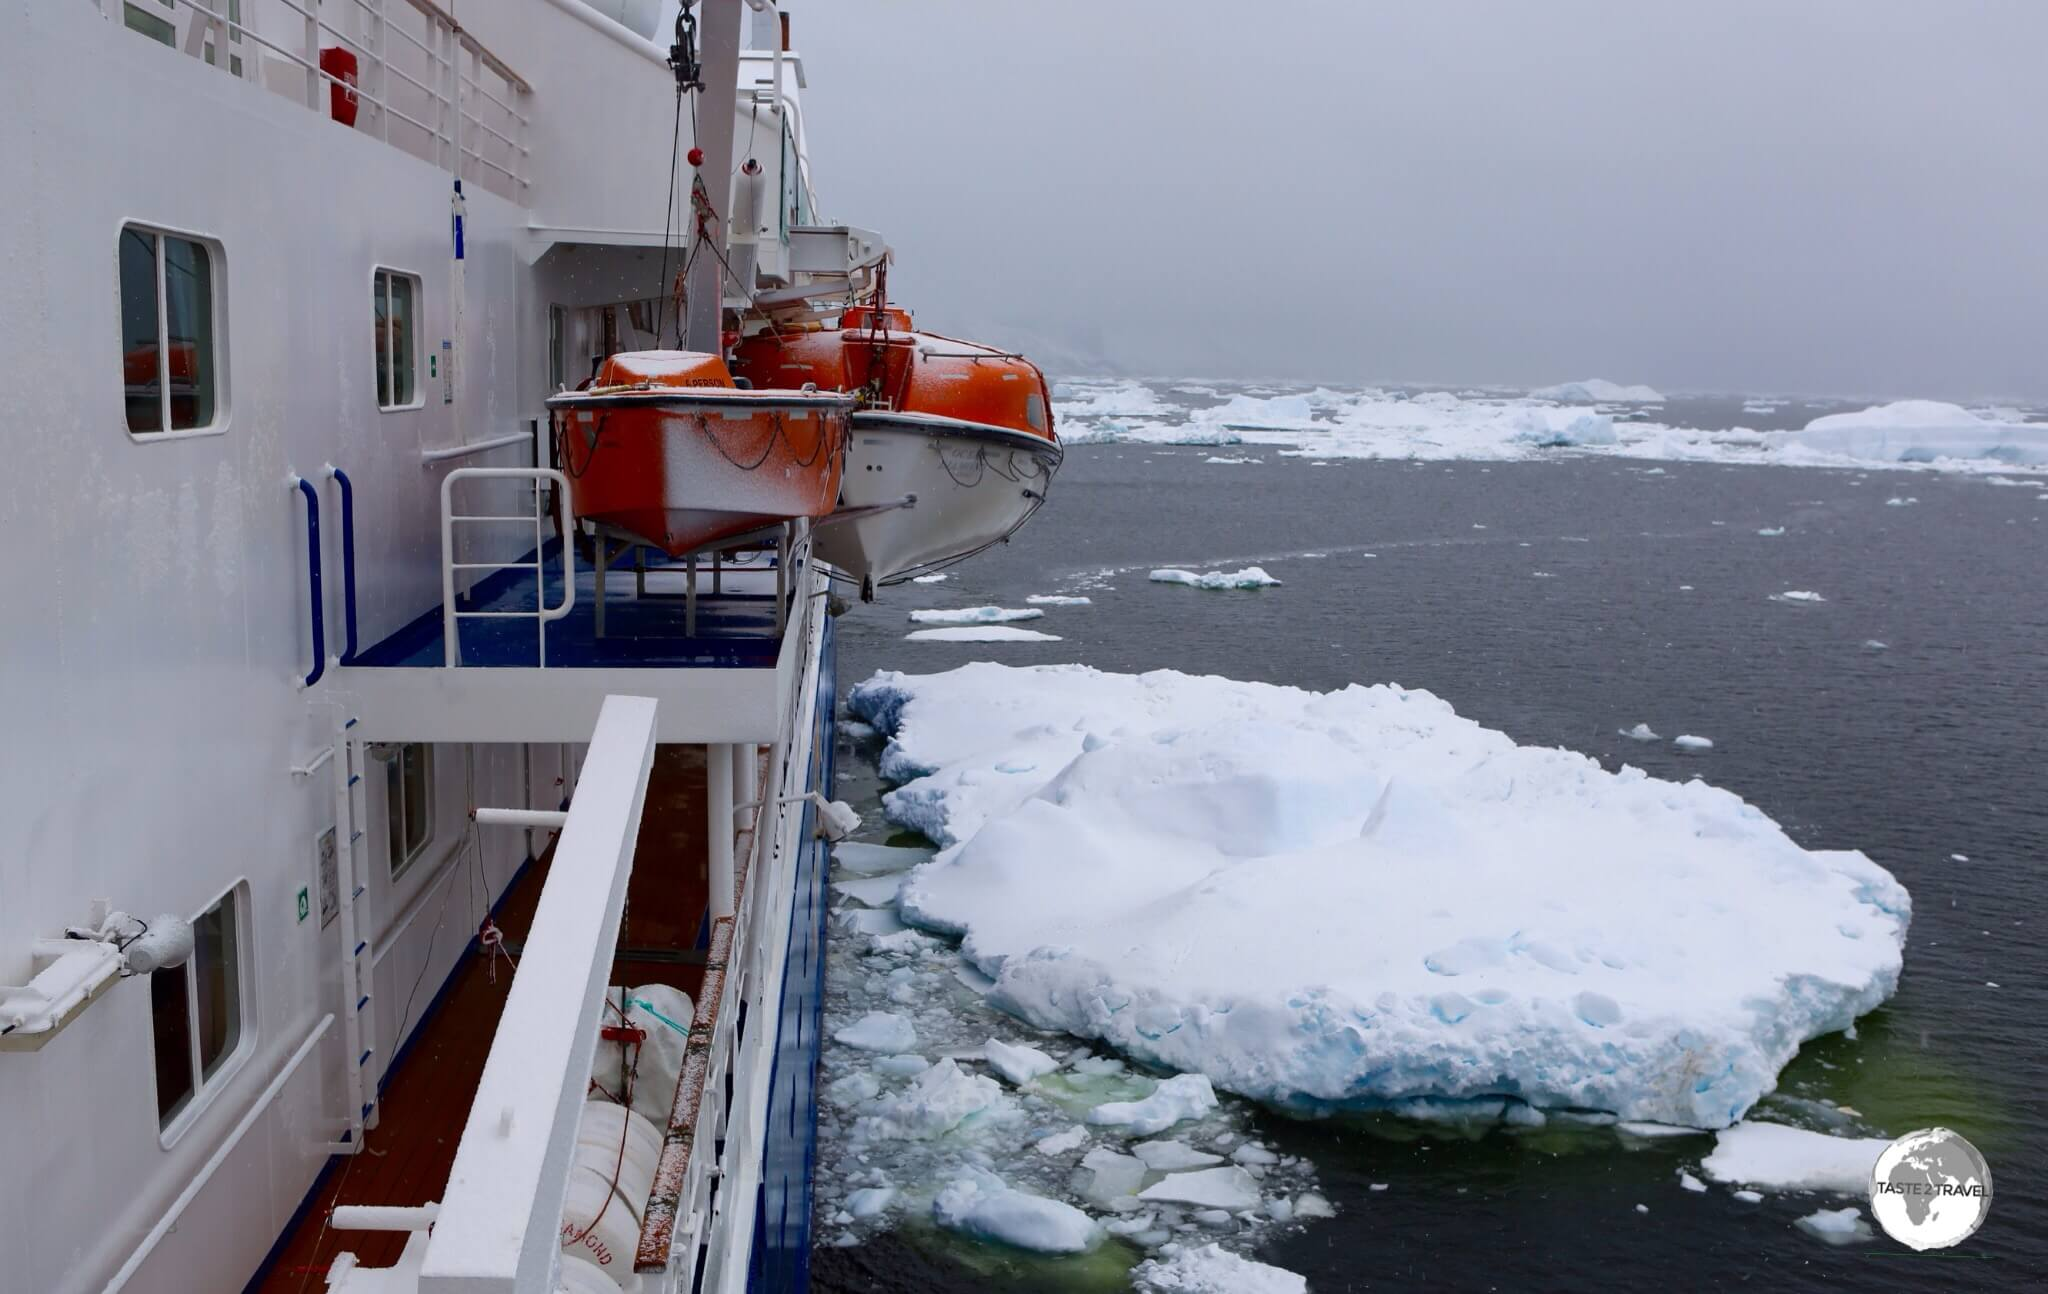 The 'Ocean Diamond' moored against a large chunk of ice on a stormy day in the Yalour Islands.